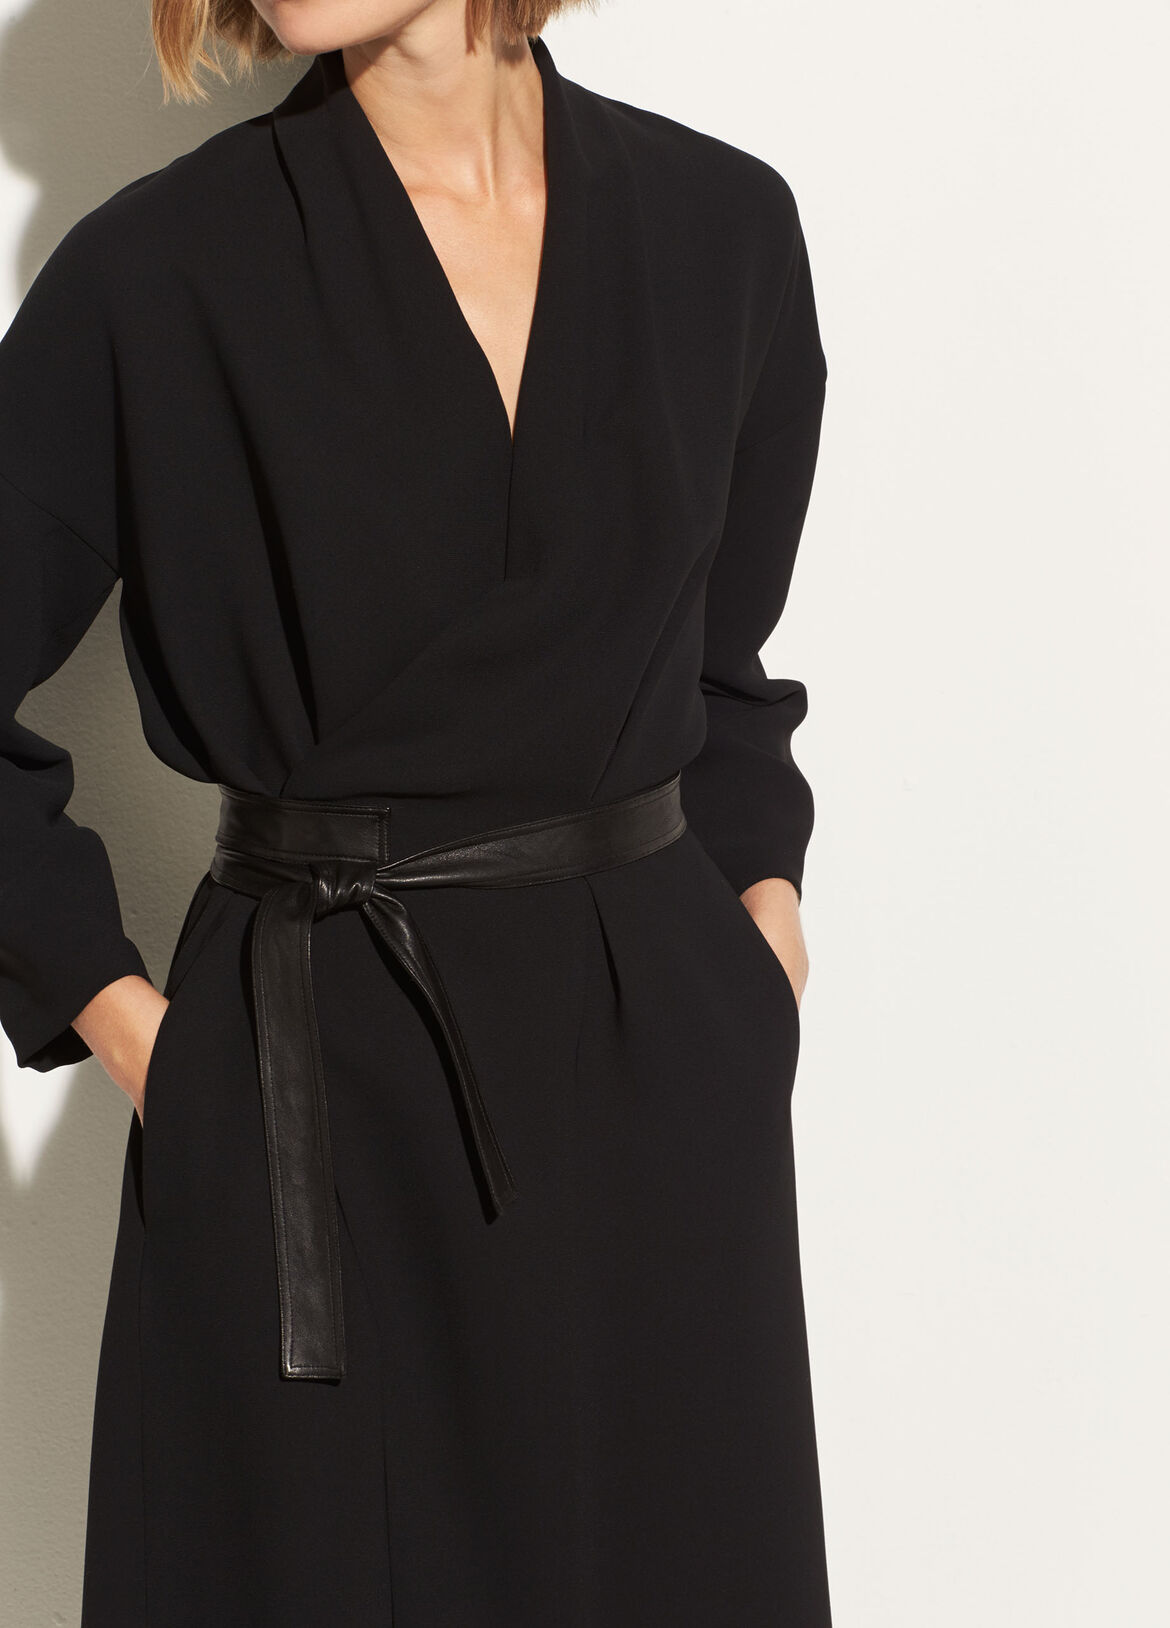 빈스 Vince Belted Wrap Dress,black